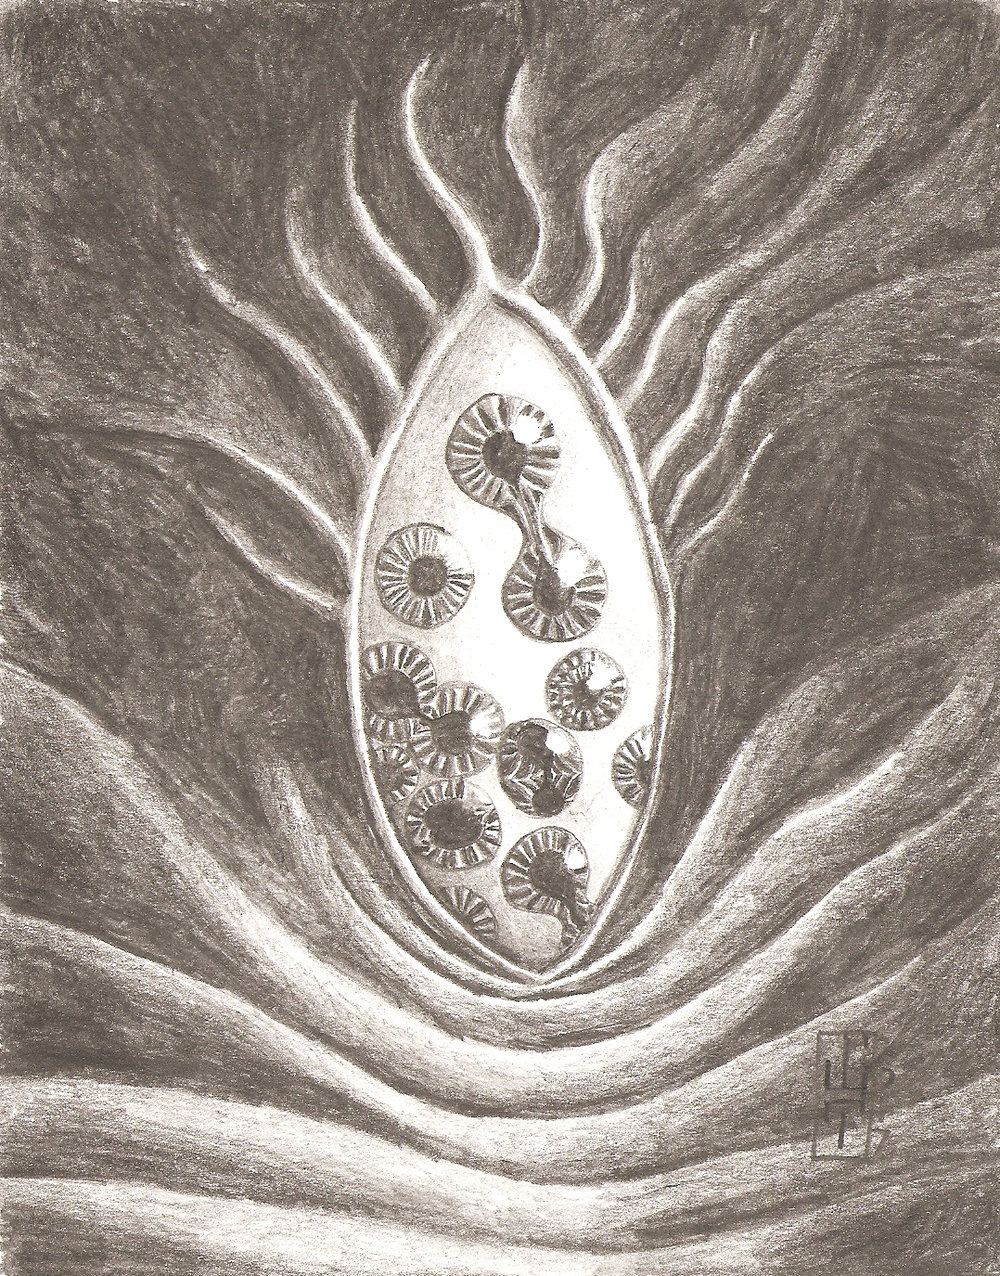 "Antipode, diVision, graphite on watercolor paper, 5x7"", 2017"